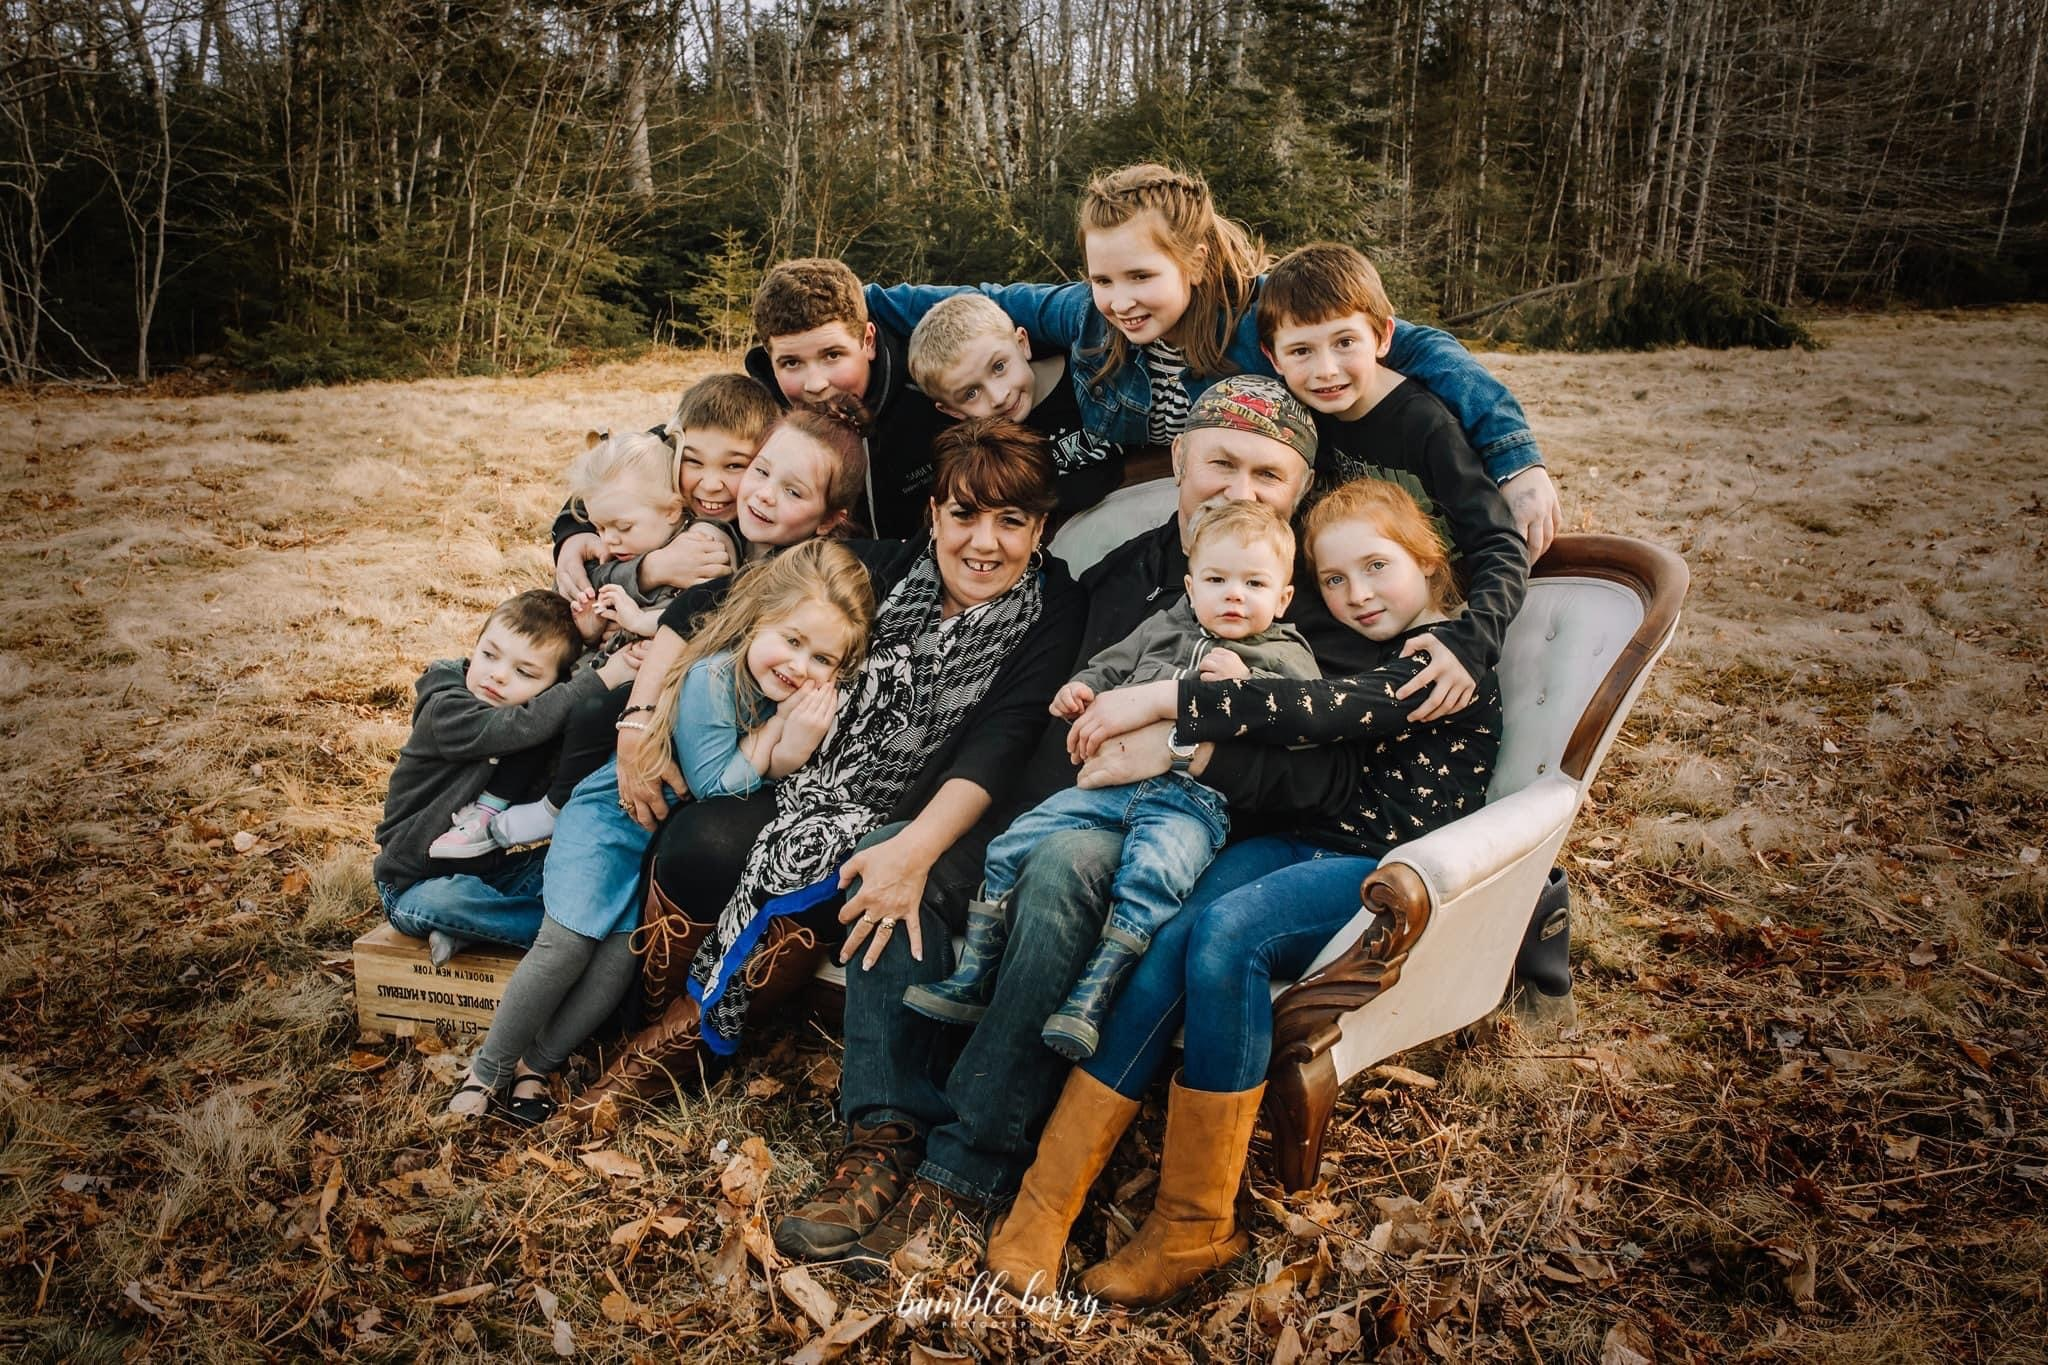 Heather O'Brien was mother to eight and loved spending time with her 12 grandchildren. (Submitted by Darcy Dobson)